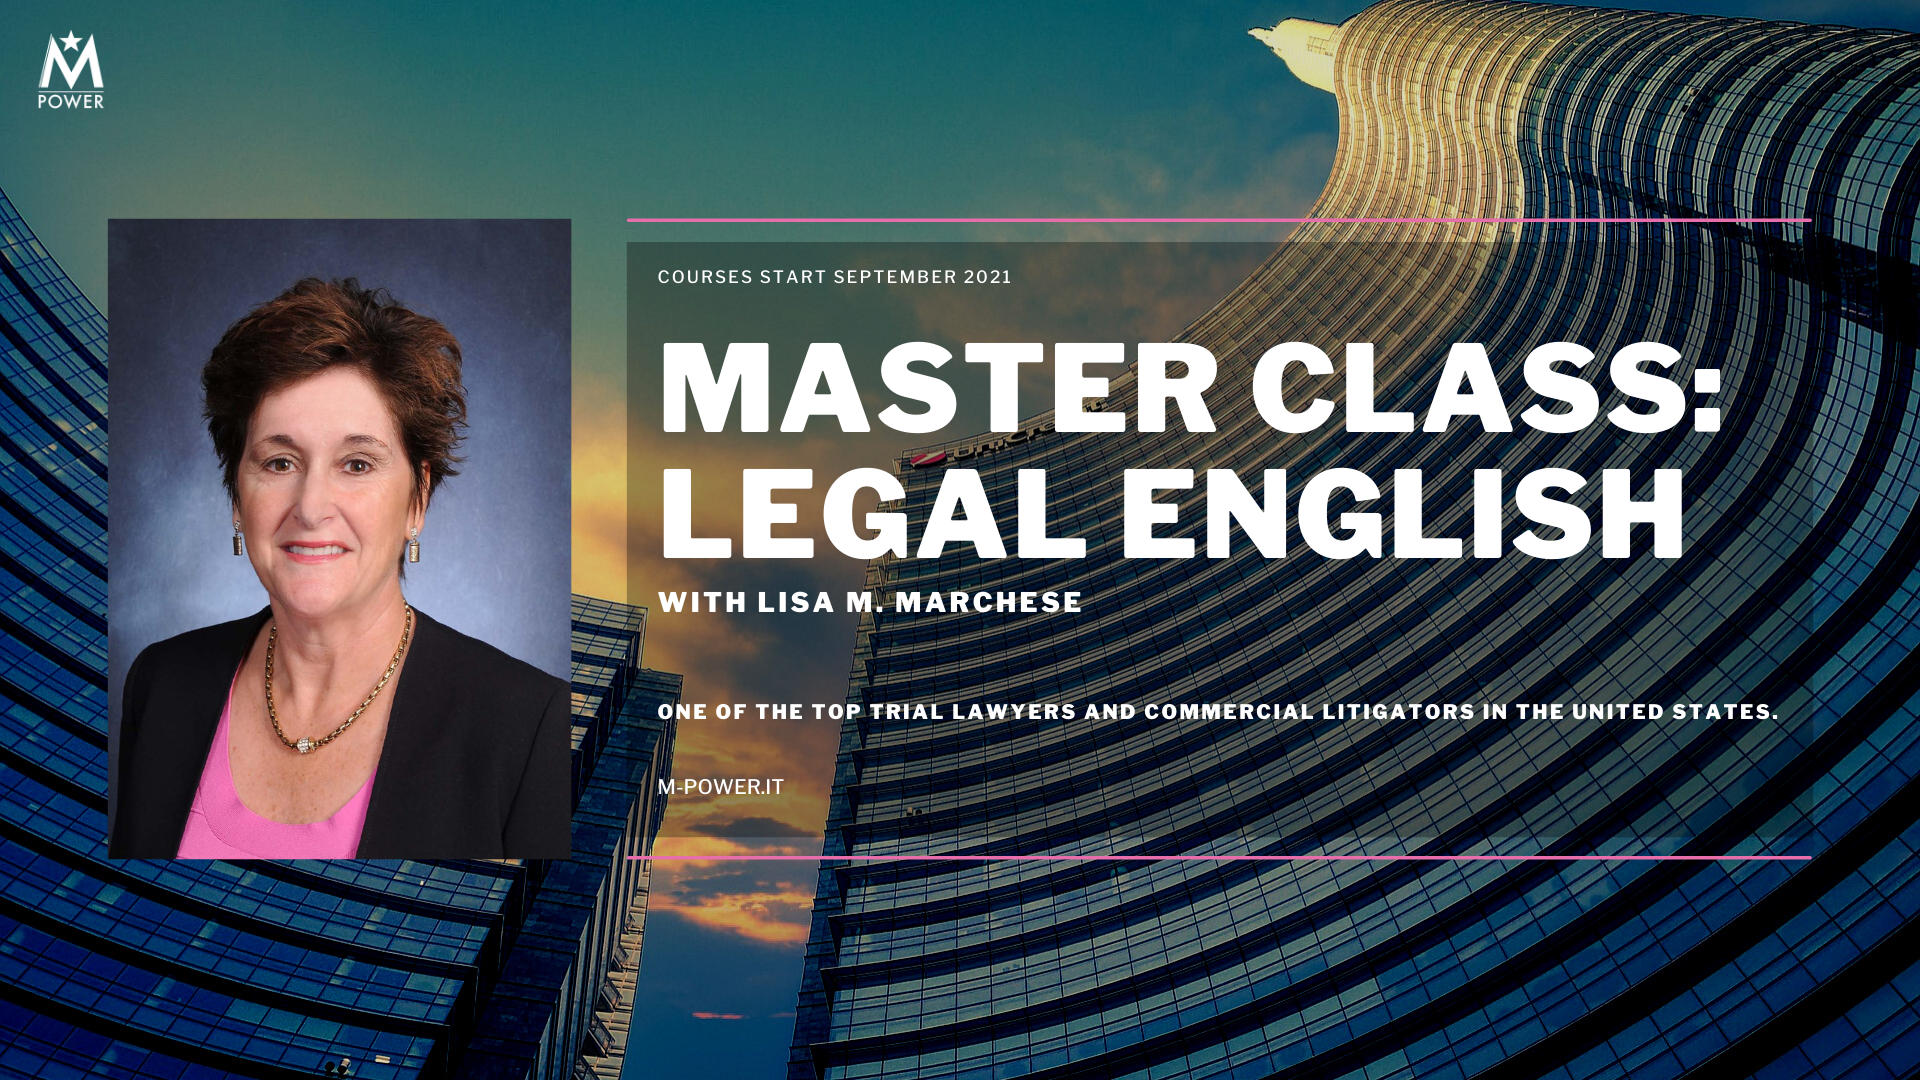 M:POWER launches Master Class: Legal English